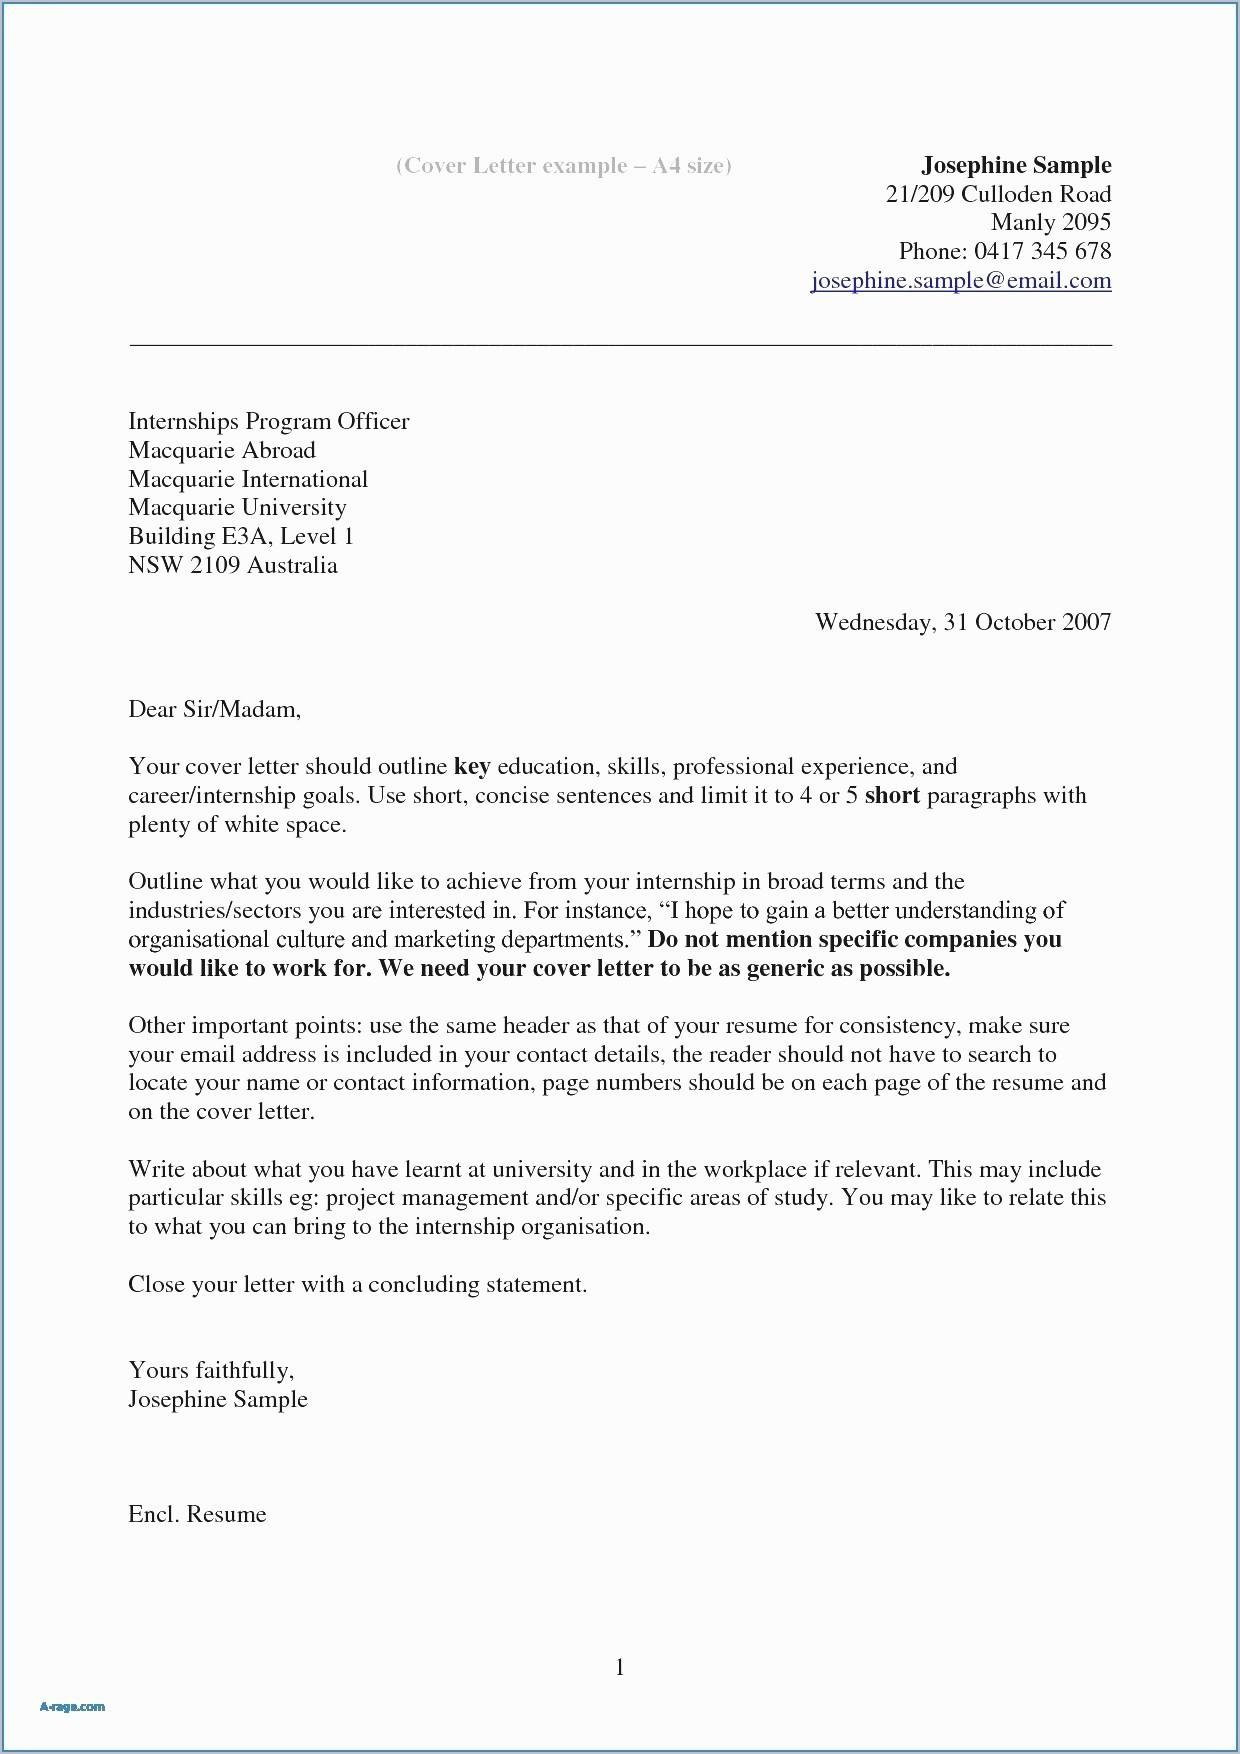 Internship Cover Letter Template - 35 Elegant How to Type A Cover Letter